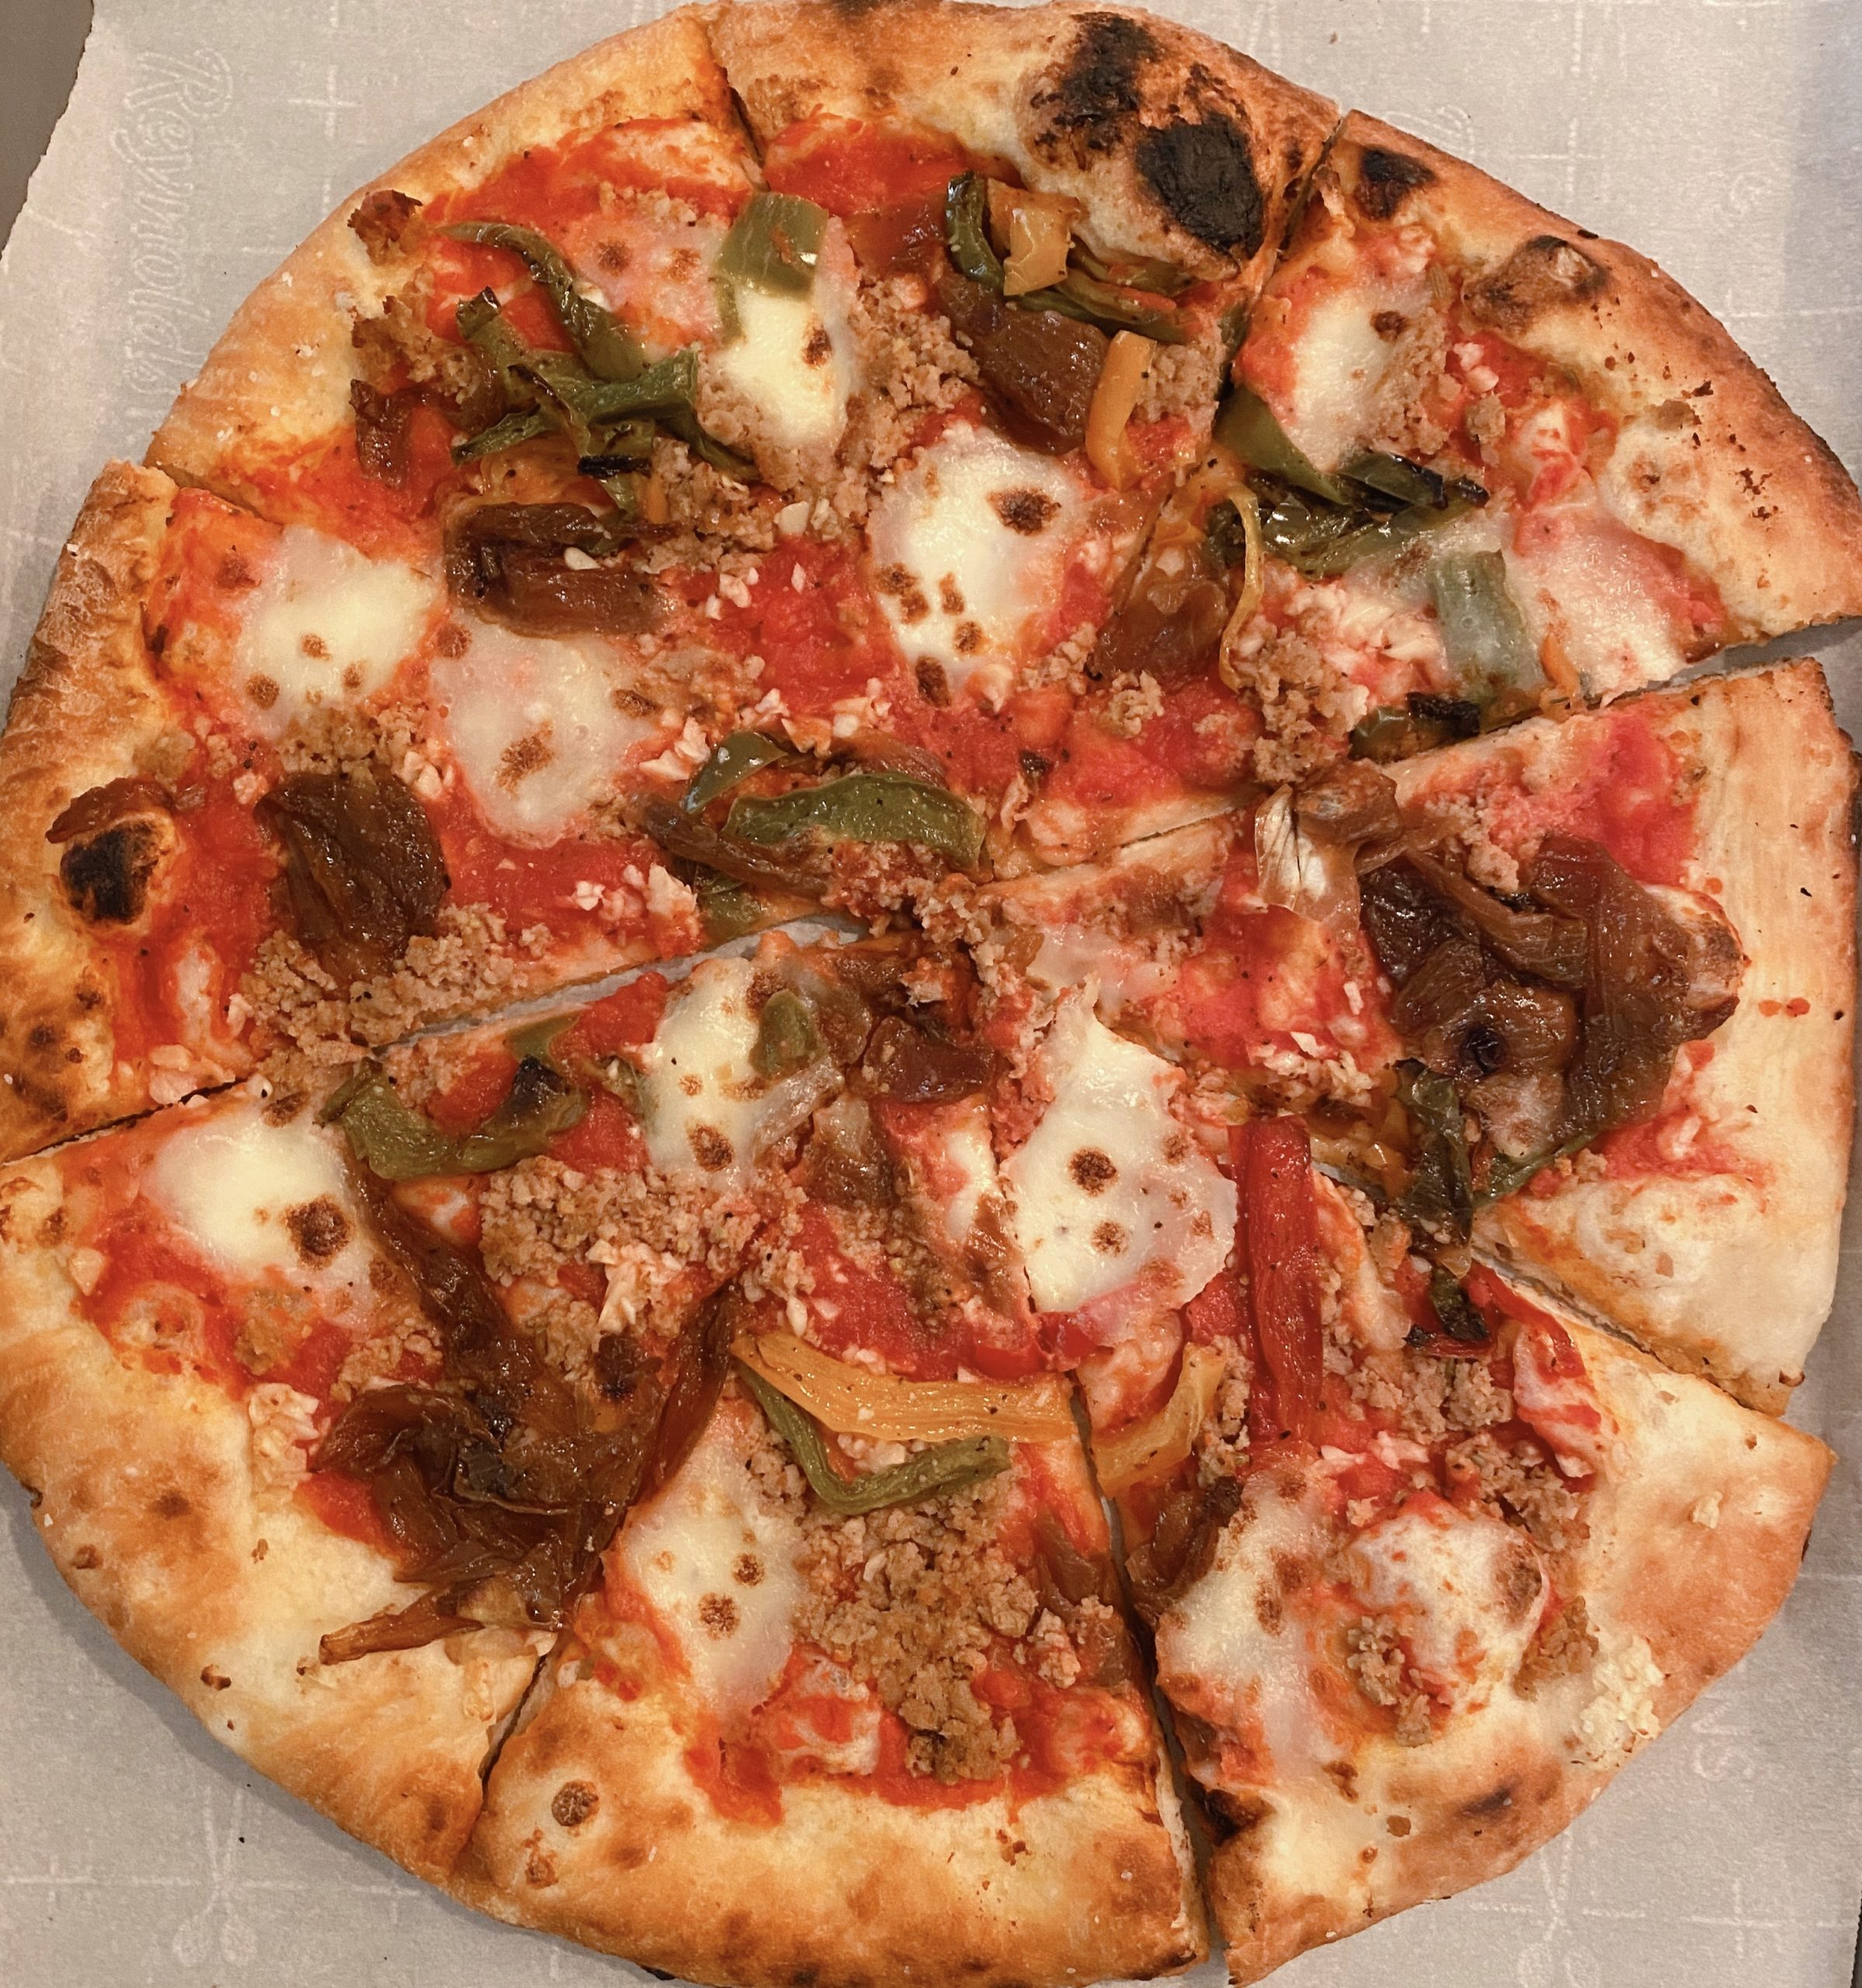 Carry-Out (the new norm) from Natalie's Coal-Fired Pizza